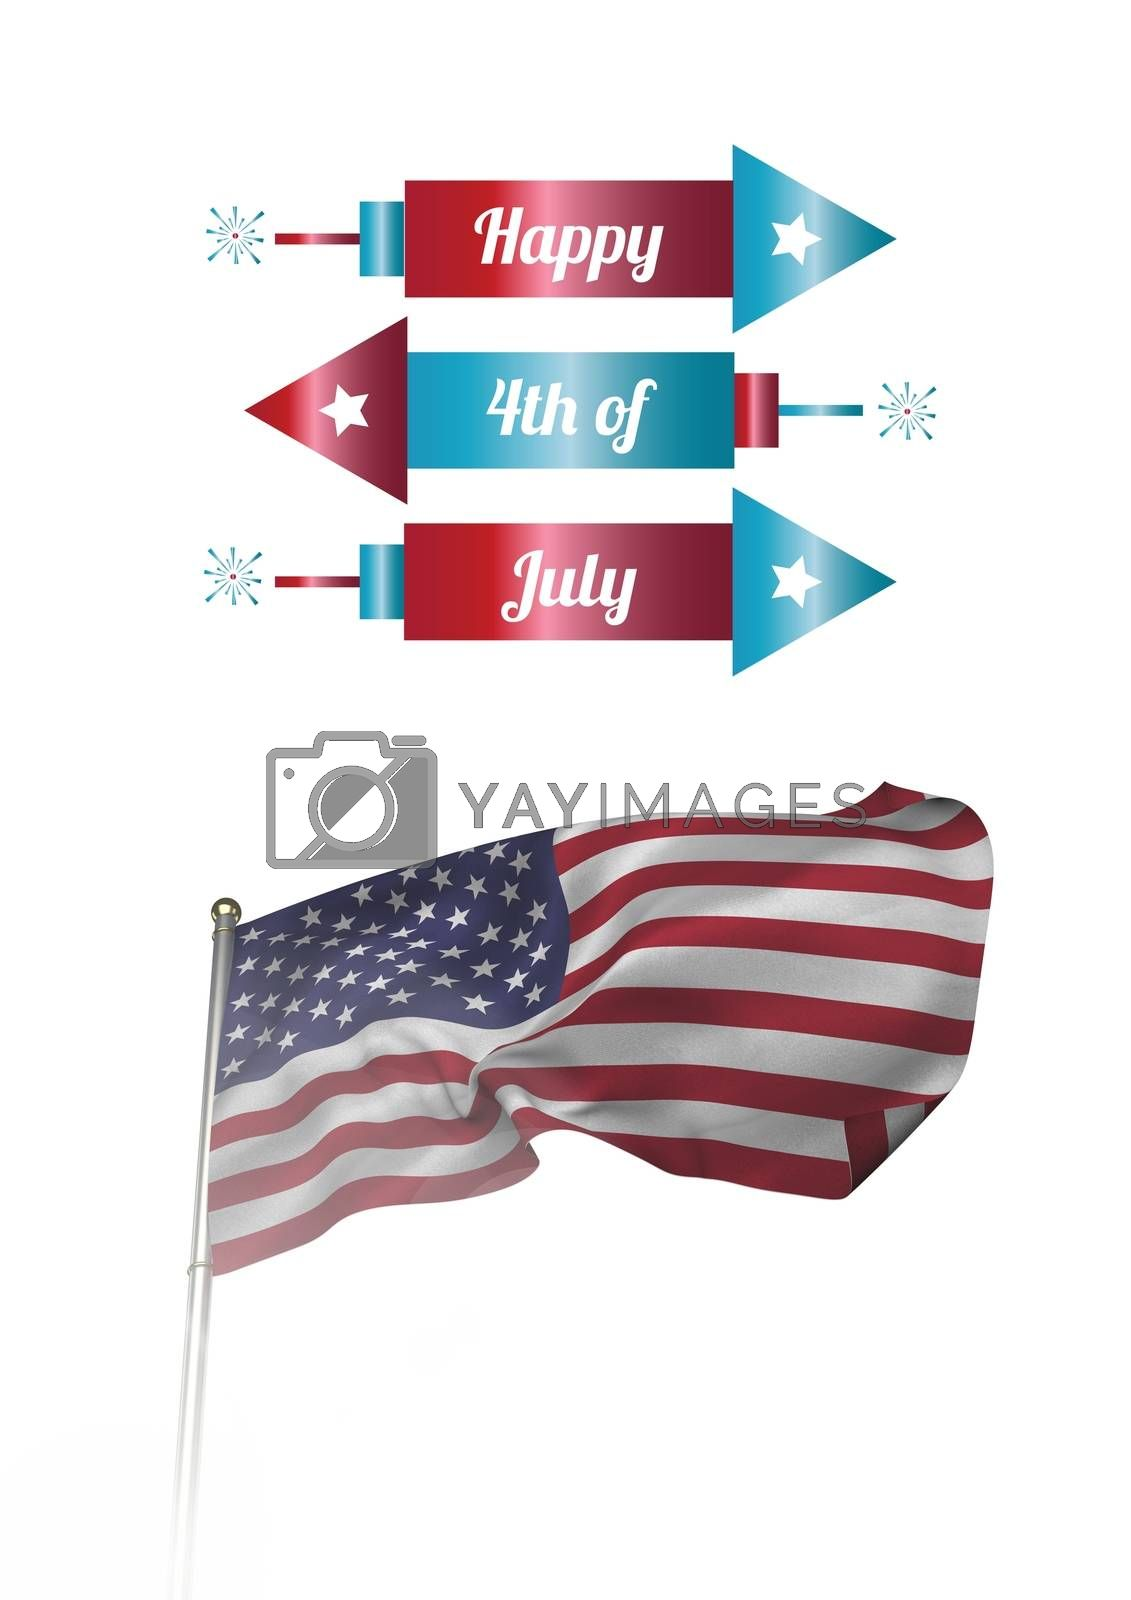 Composite image with fireworks and american flag for the 4th of July by Wavebreakmedia